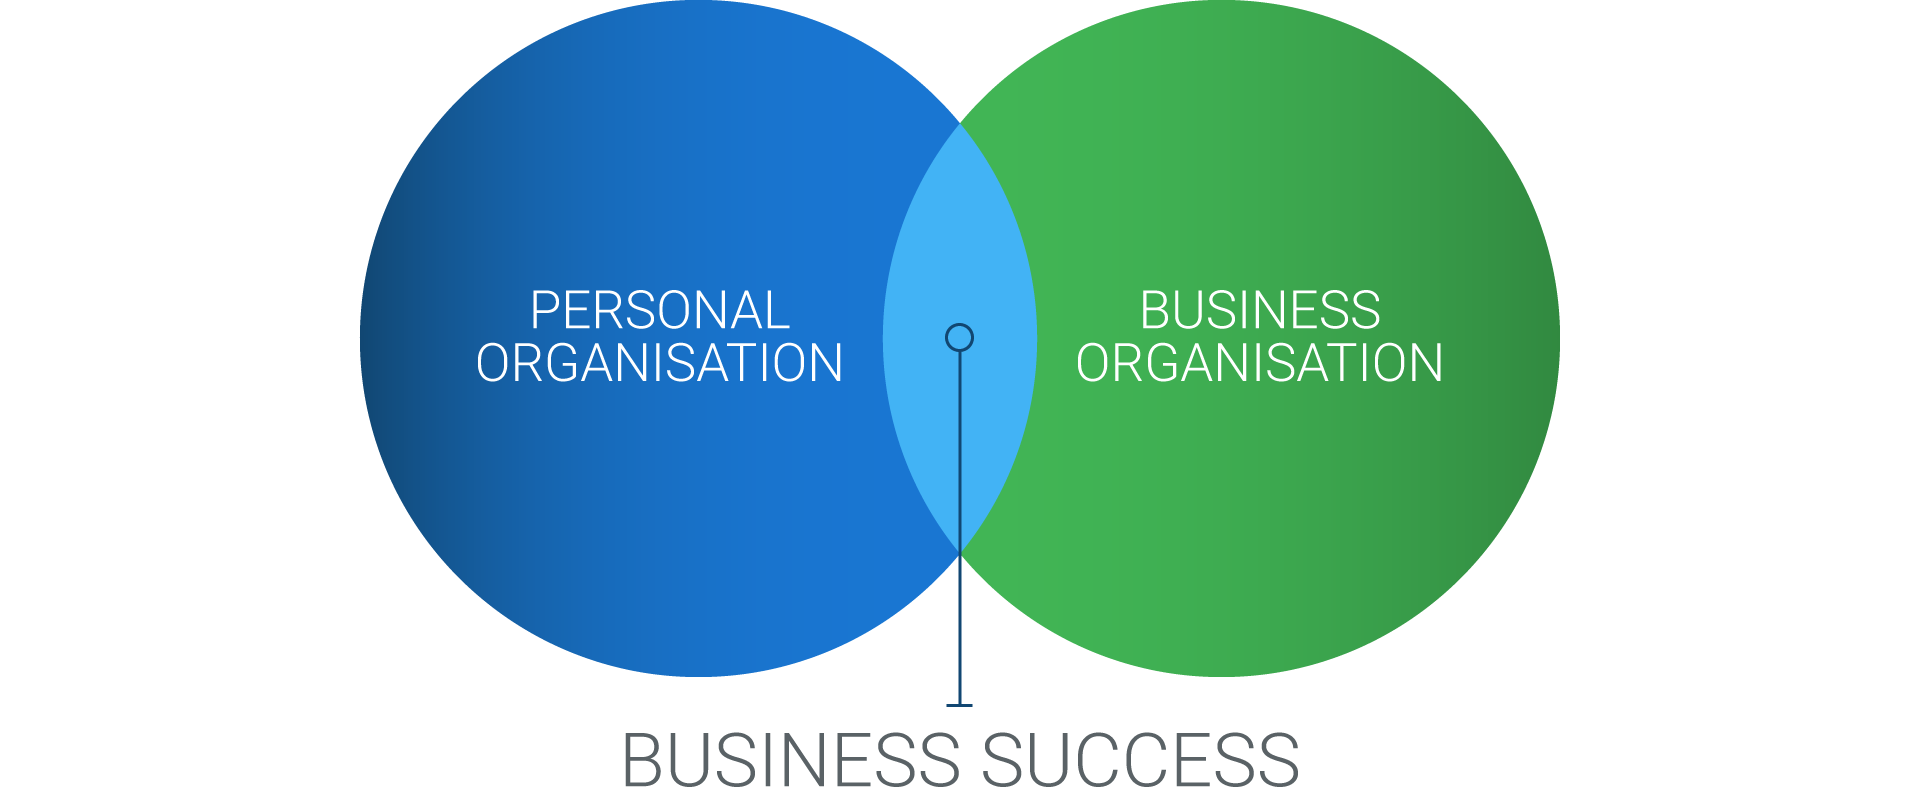 Business Success graphic - Personal Organisation/Business Organizations venn diagram